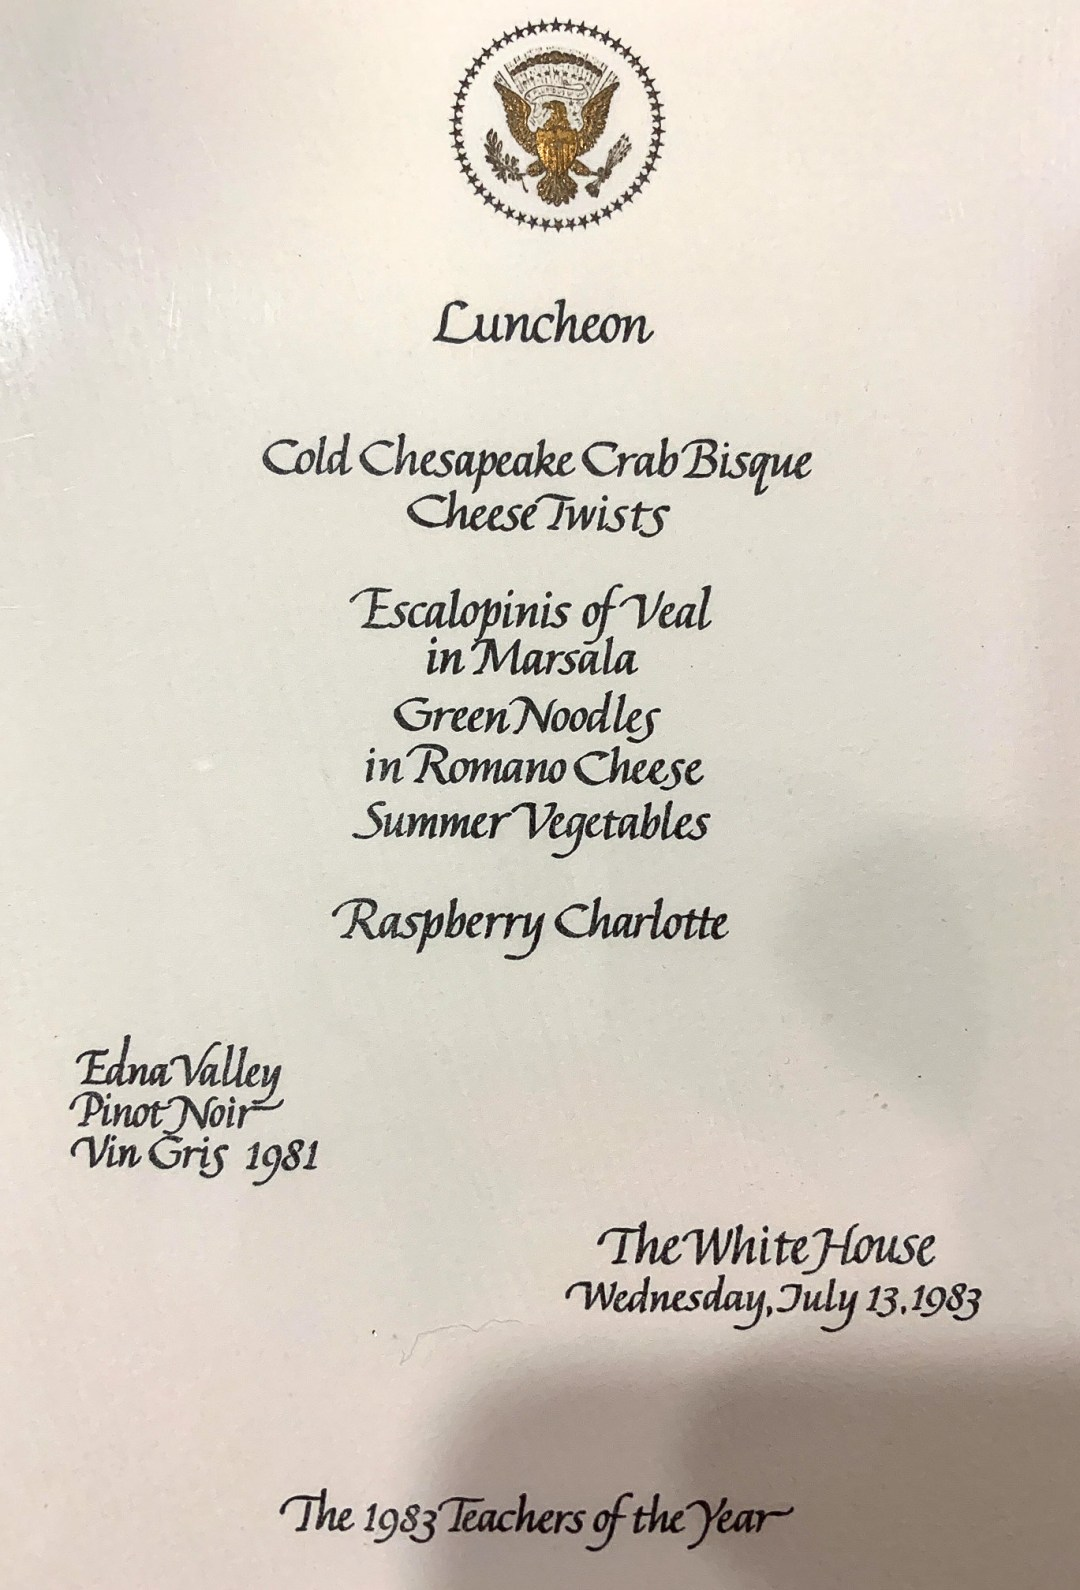 WhiteHouseMenu-Jul13-1983-EdnaValley